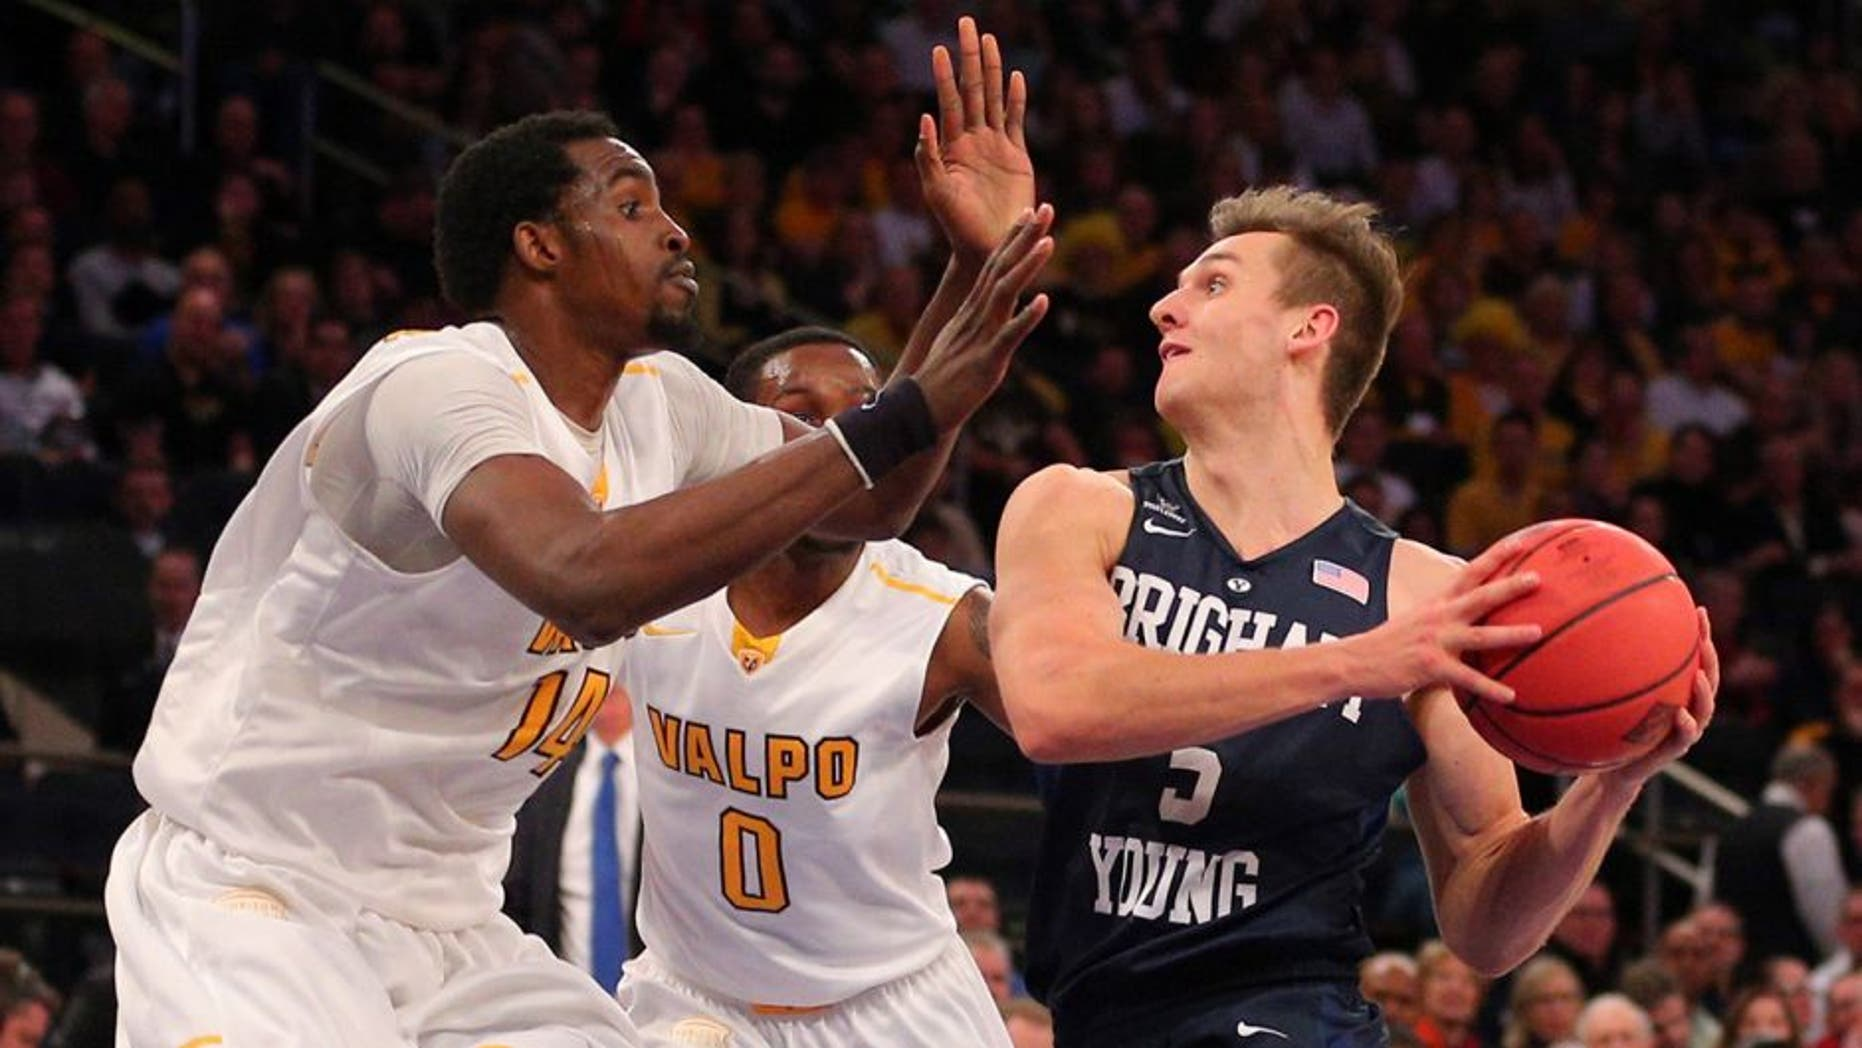 Mar 29, 2016; New York, NY, USA; BYU Cougars guard Kyle Collinsworth (5) prepares to shoot the ball as Valparaiso Crusaders center Vashil Fernandez (14) and guard Keith Carter (0) defend during the second half of a semifinal game of the 2016 NIT basketball tournament at Madison Square Garden. The Crusaders won 72-70. Mandatory Credit: Brad Penner-USA TODAY Sports